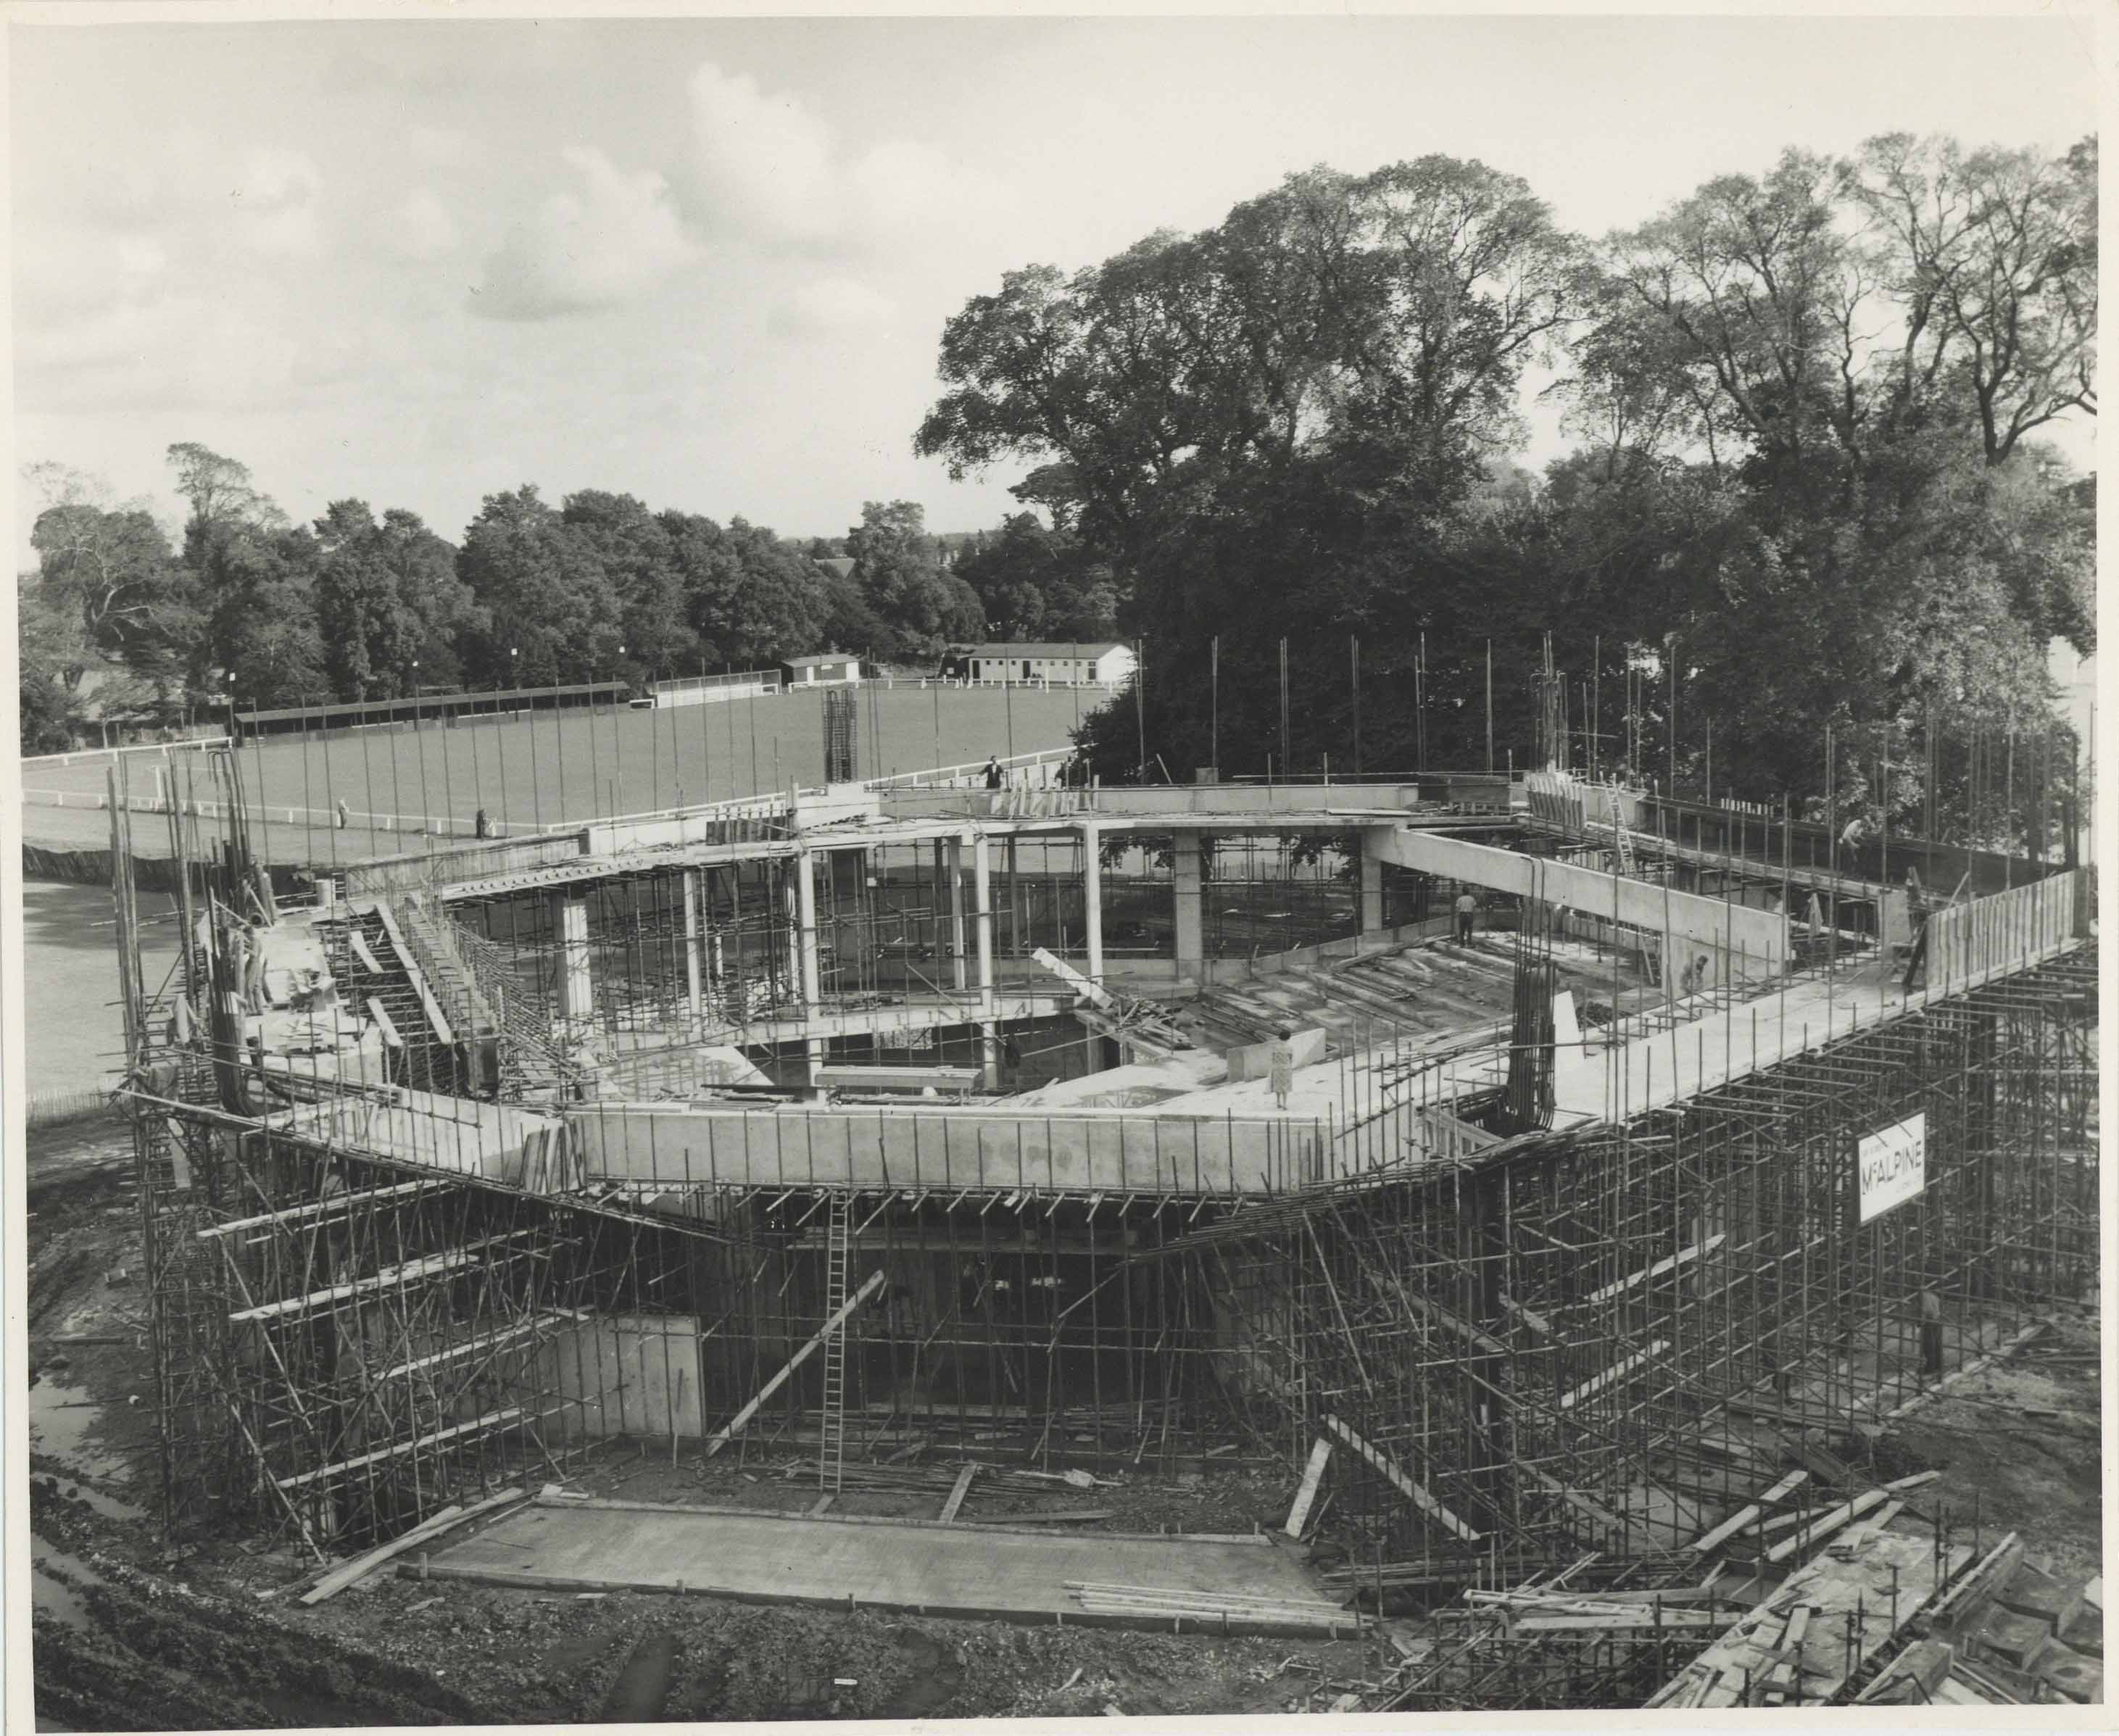 Photograph Construction Aerial Cantilever Exterior Festival Theatre - Photographer unknown - 1960s - Box 71 CFT WSRO